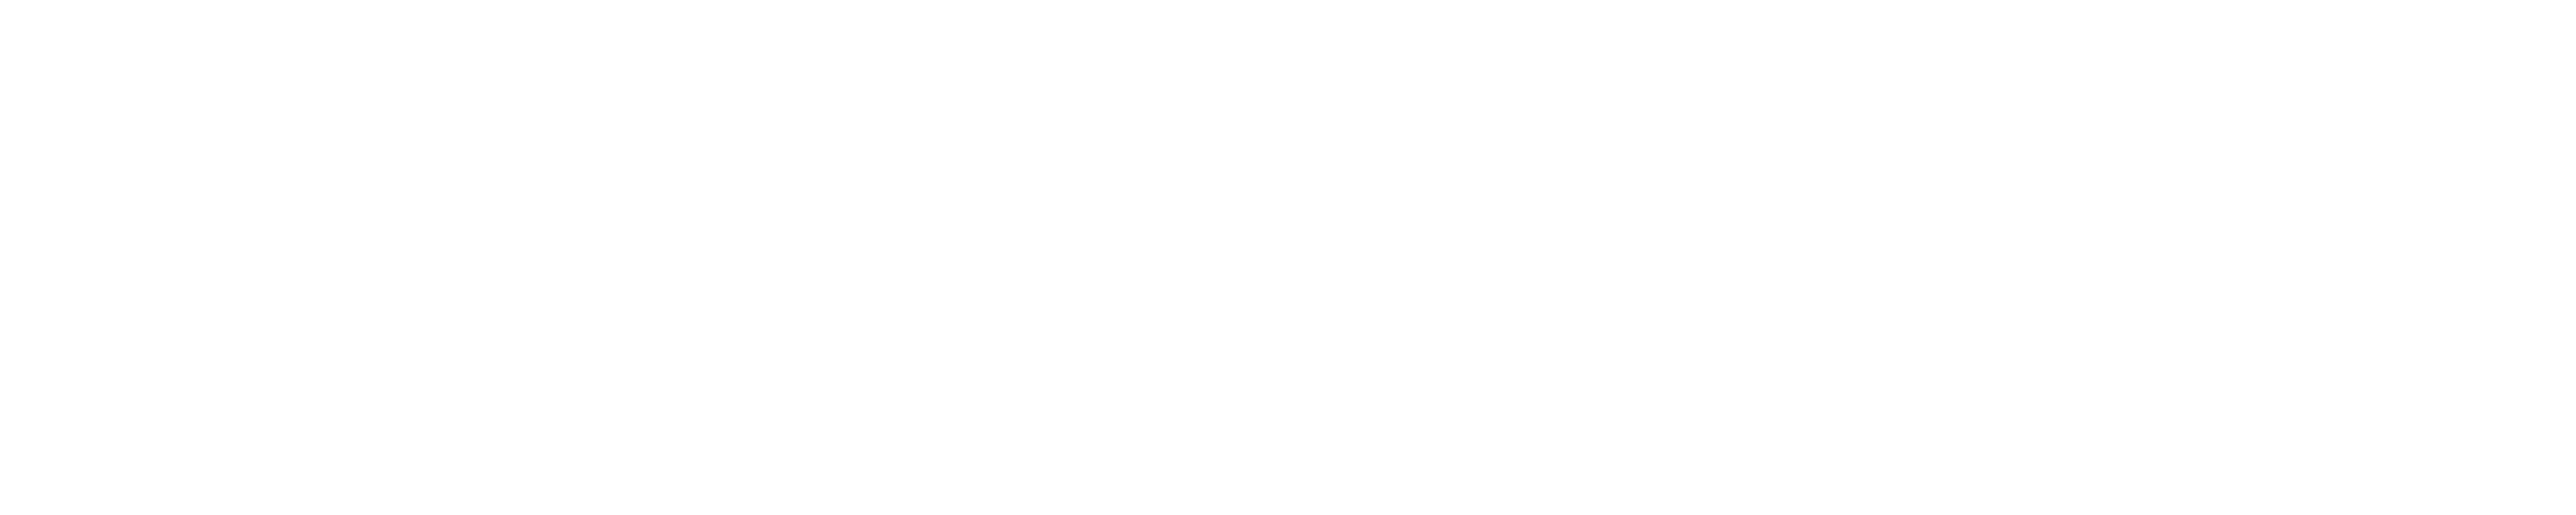 International Perforating Forum Logo